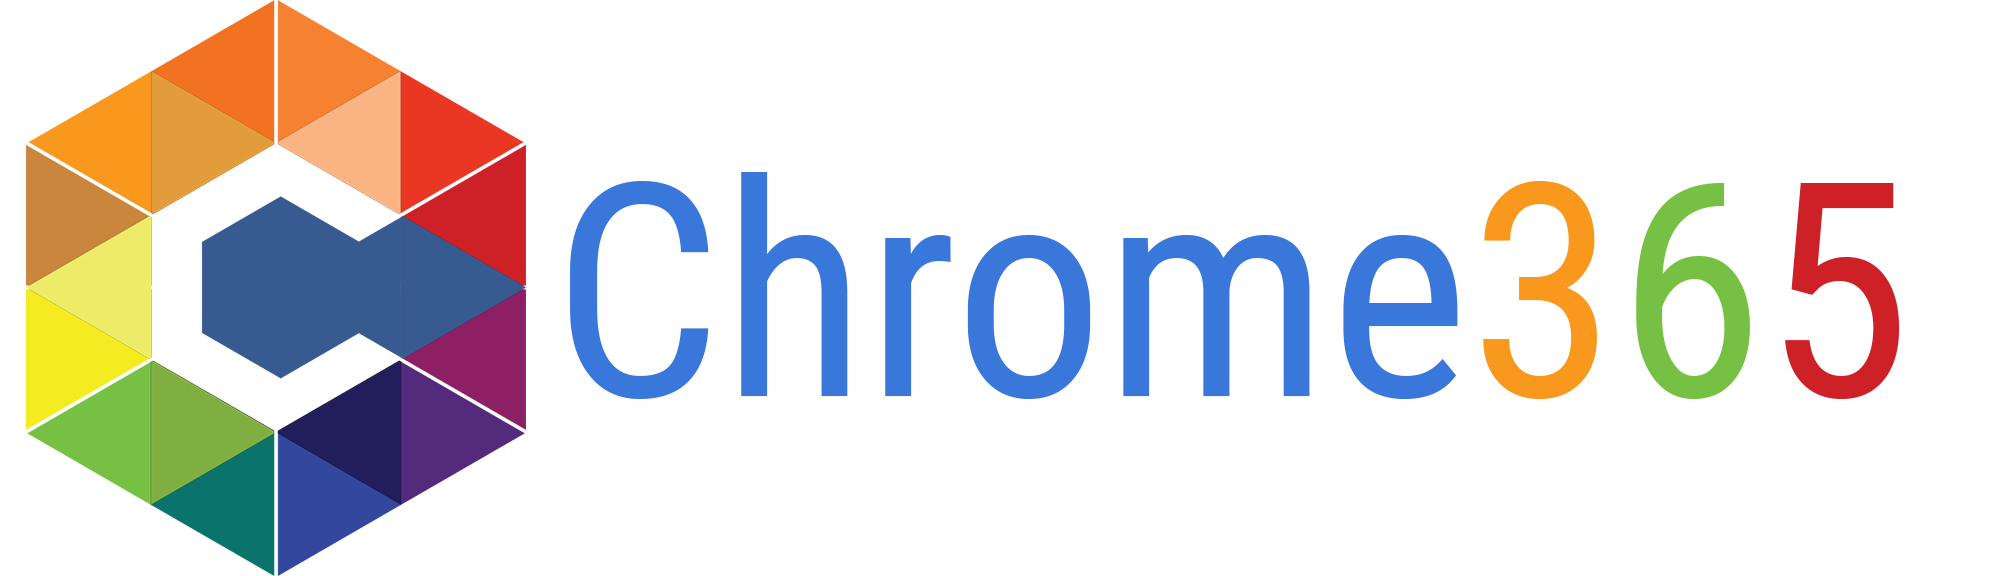 Shop Chrome365